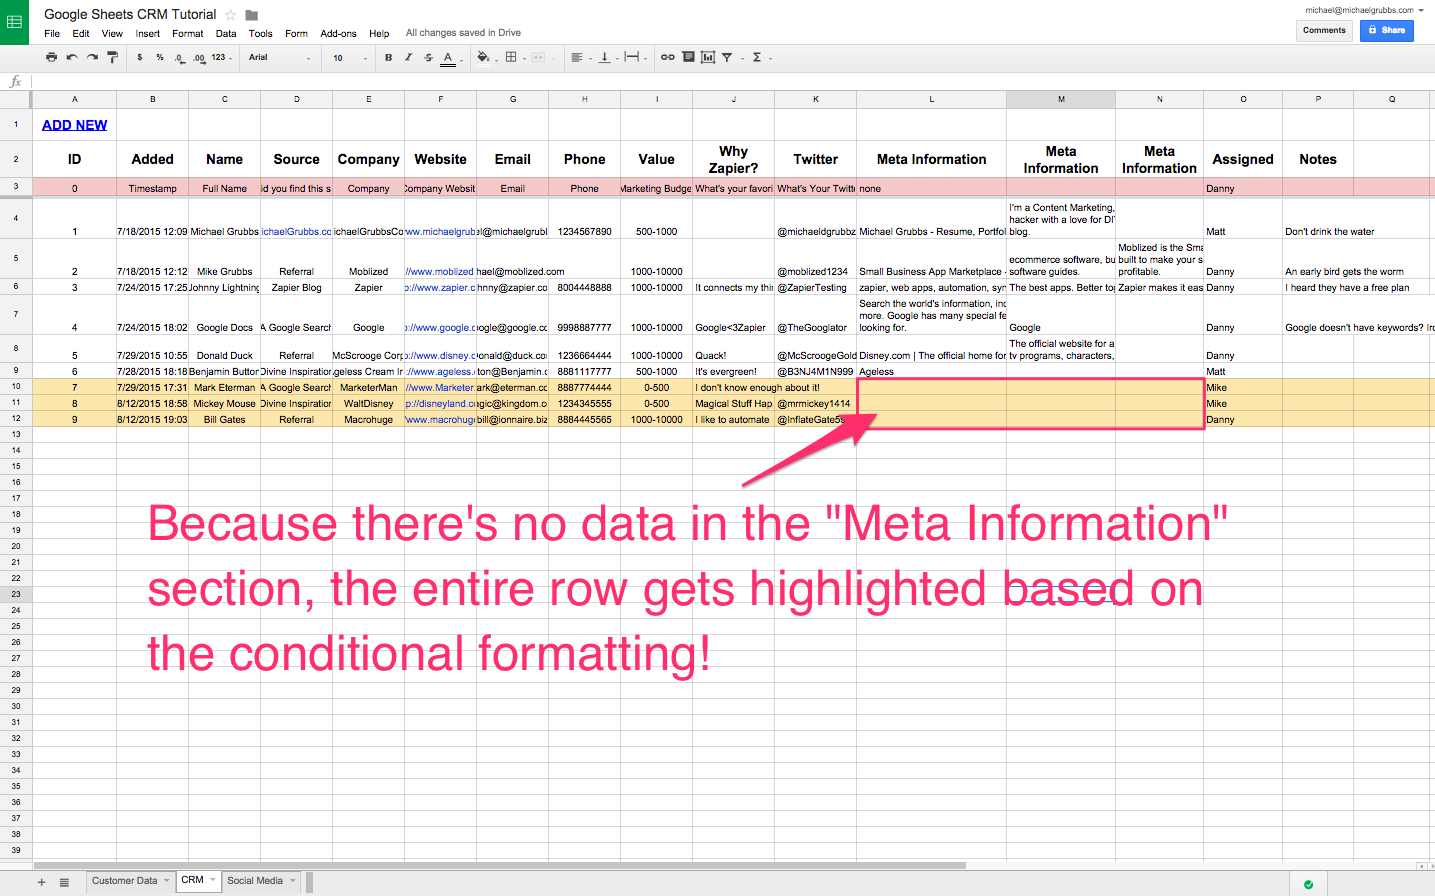 Spreadsheet Crm: How To Create A Customizable Crm With Google Sheets For Crm Excel Spreadsheet Download